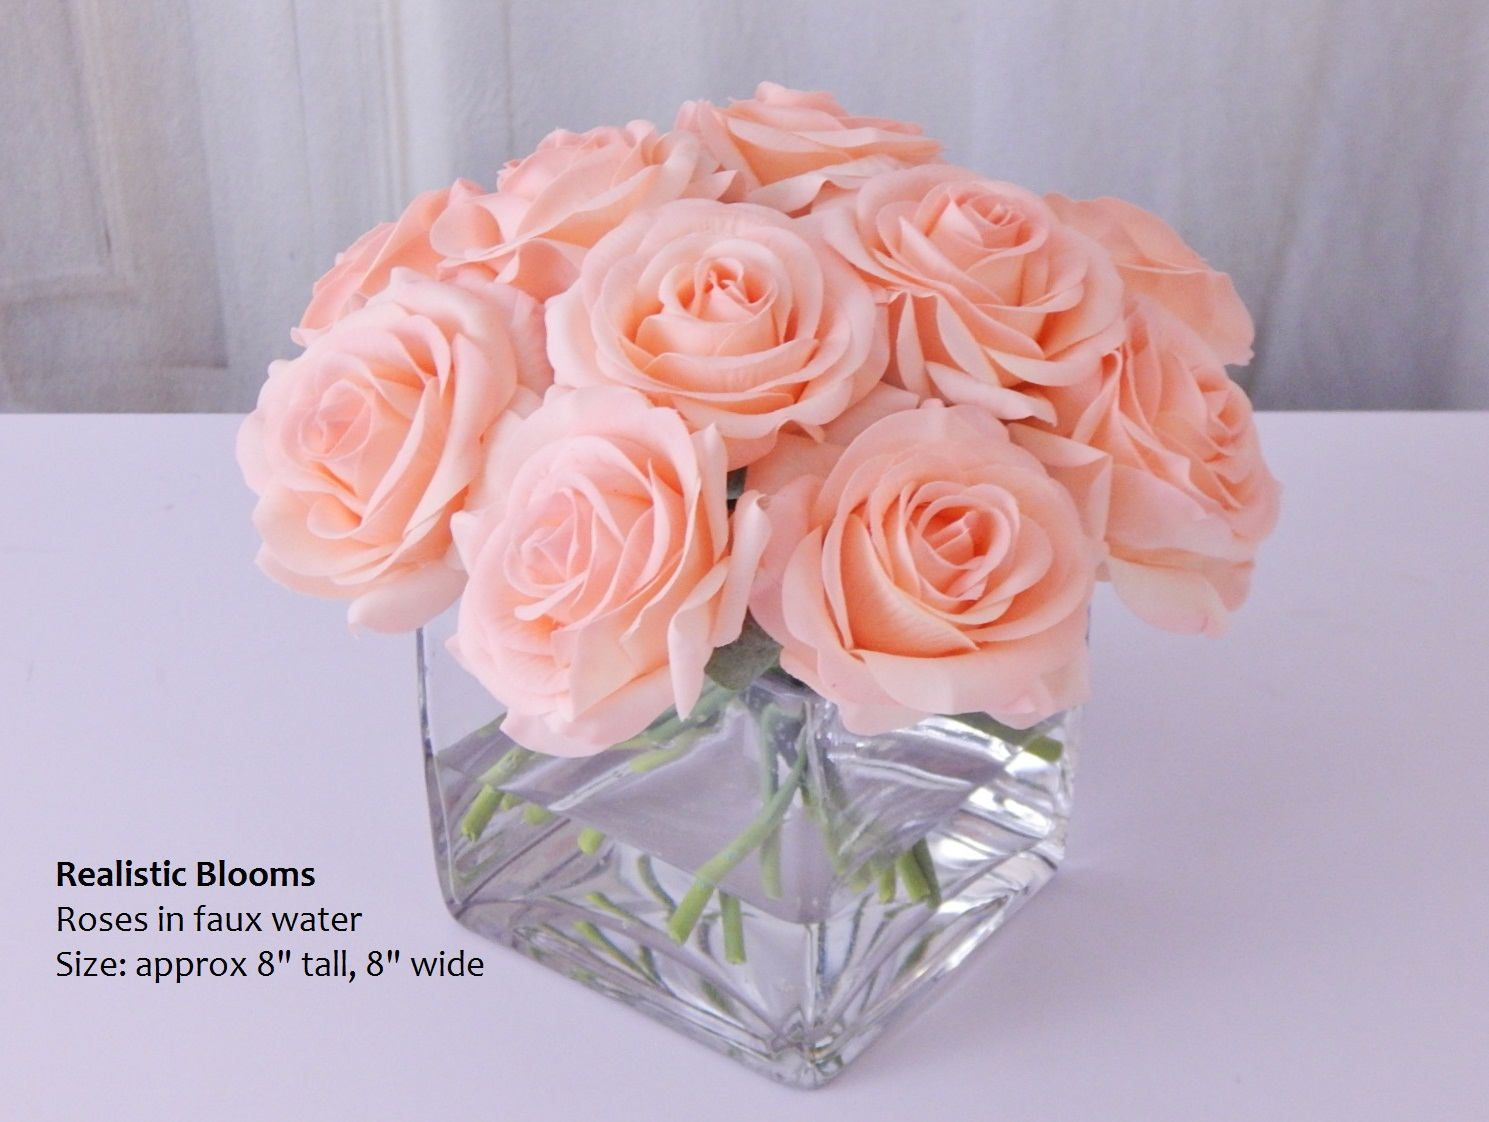 Pinkchampagne Roseroses Cubevase Faux Water Acrylicillusion